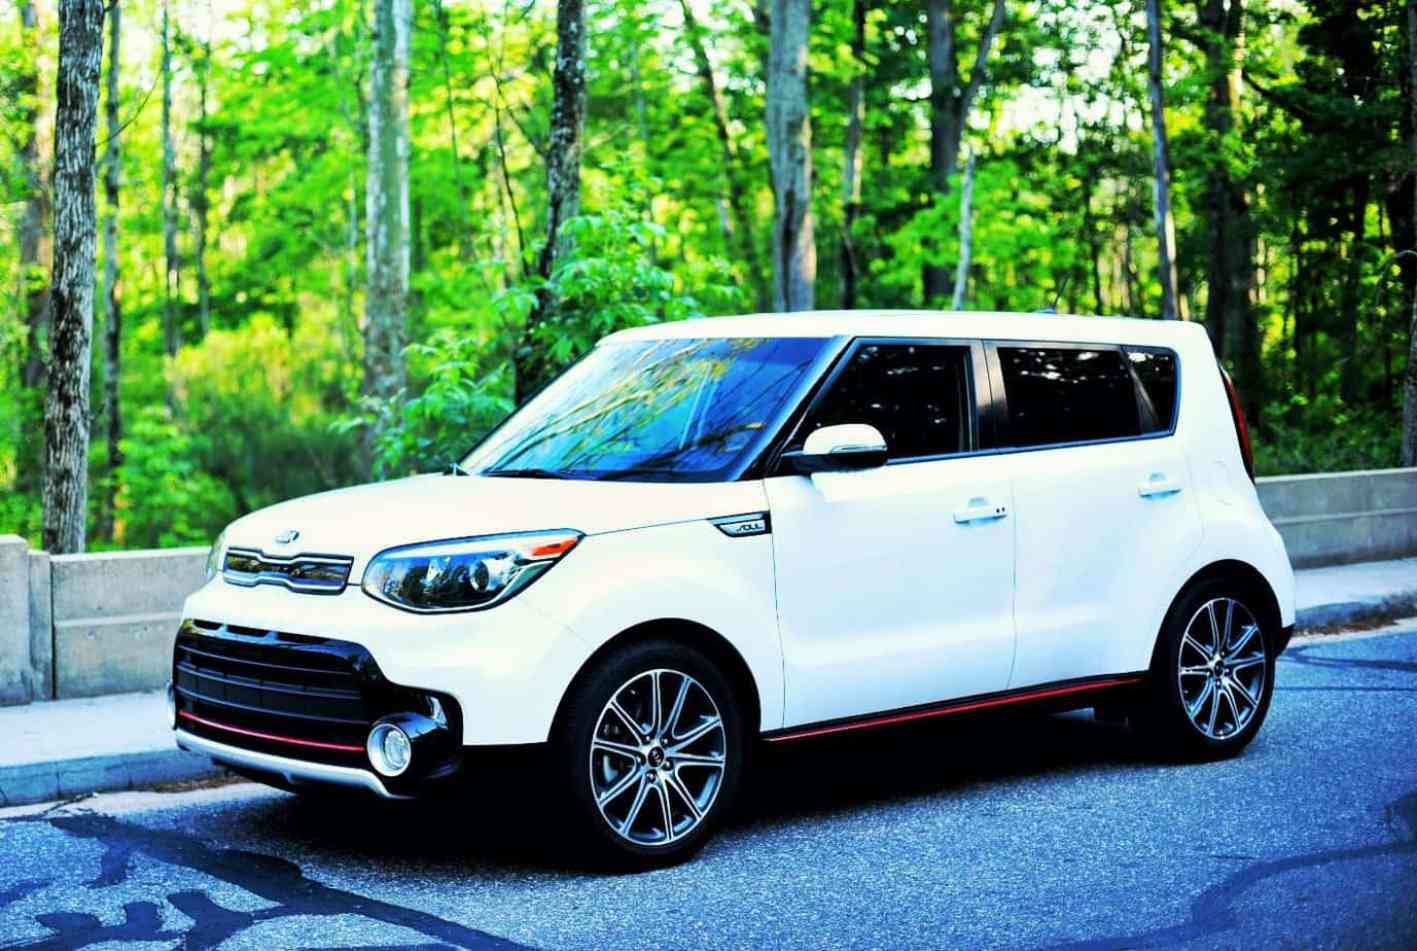 Kia Soul Turbo - #SoulConvos